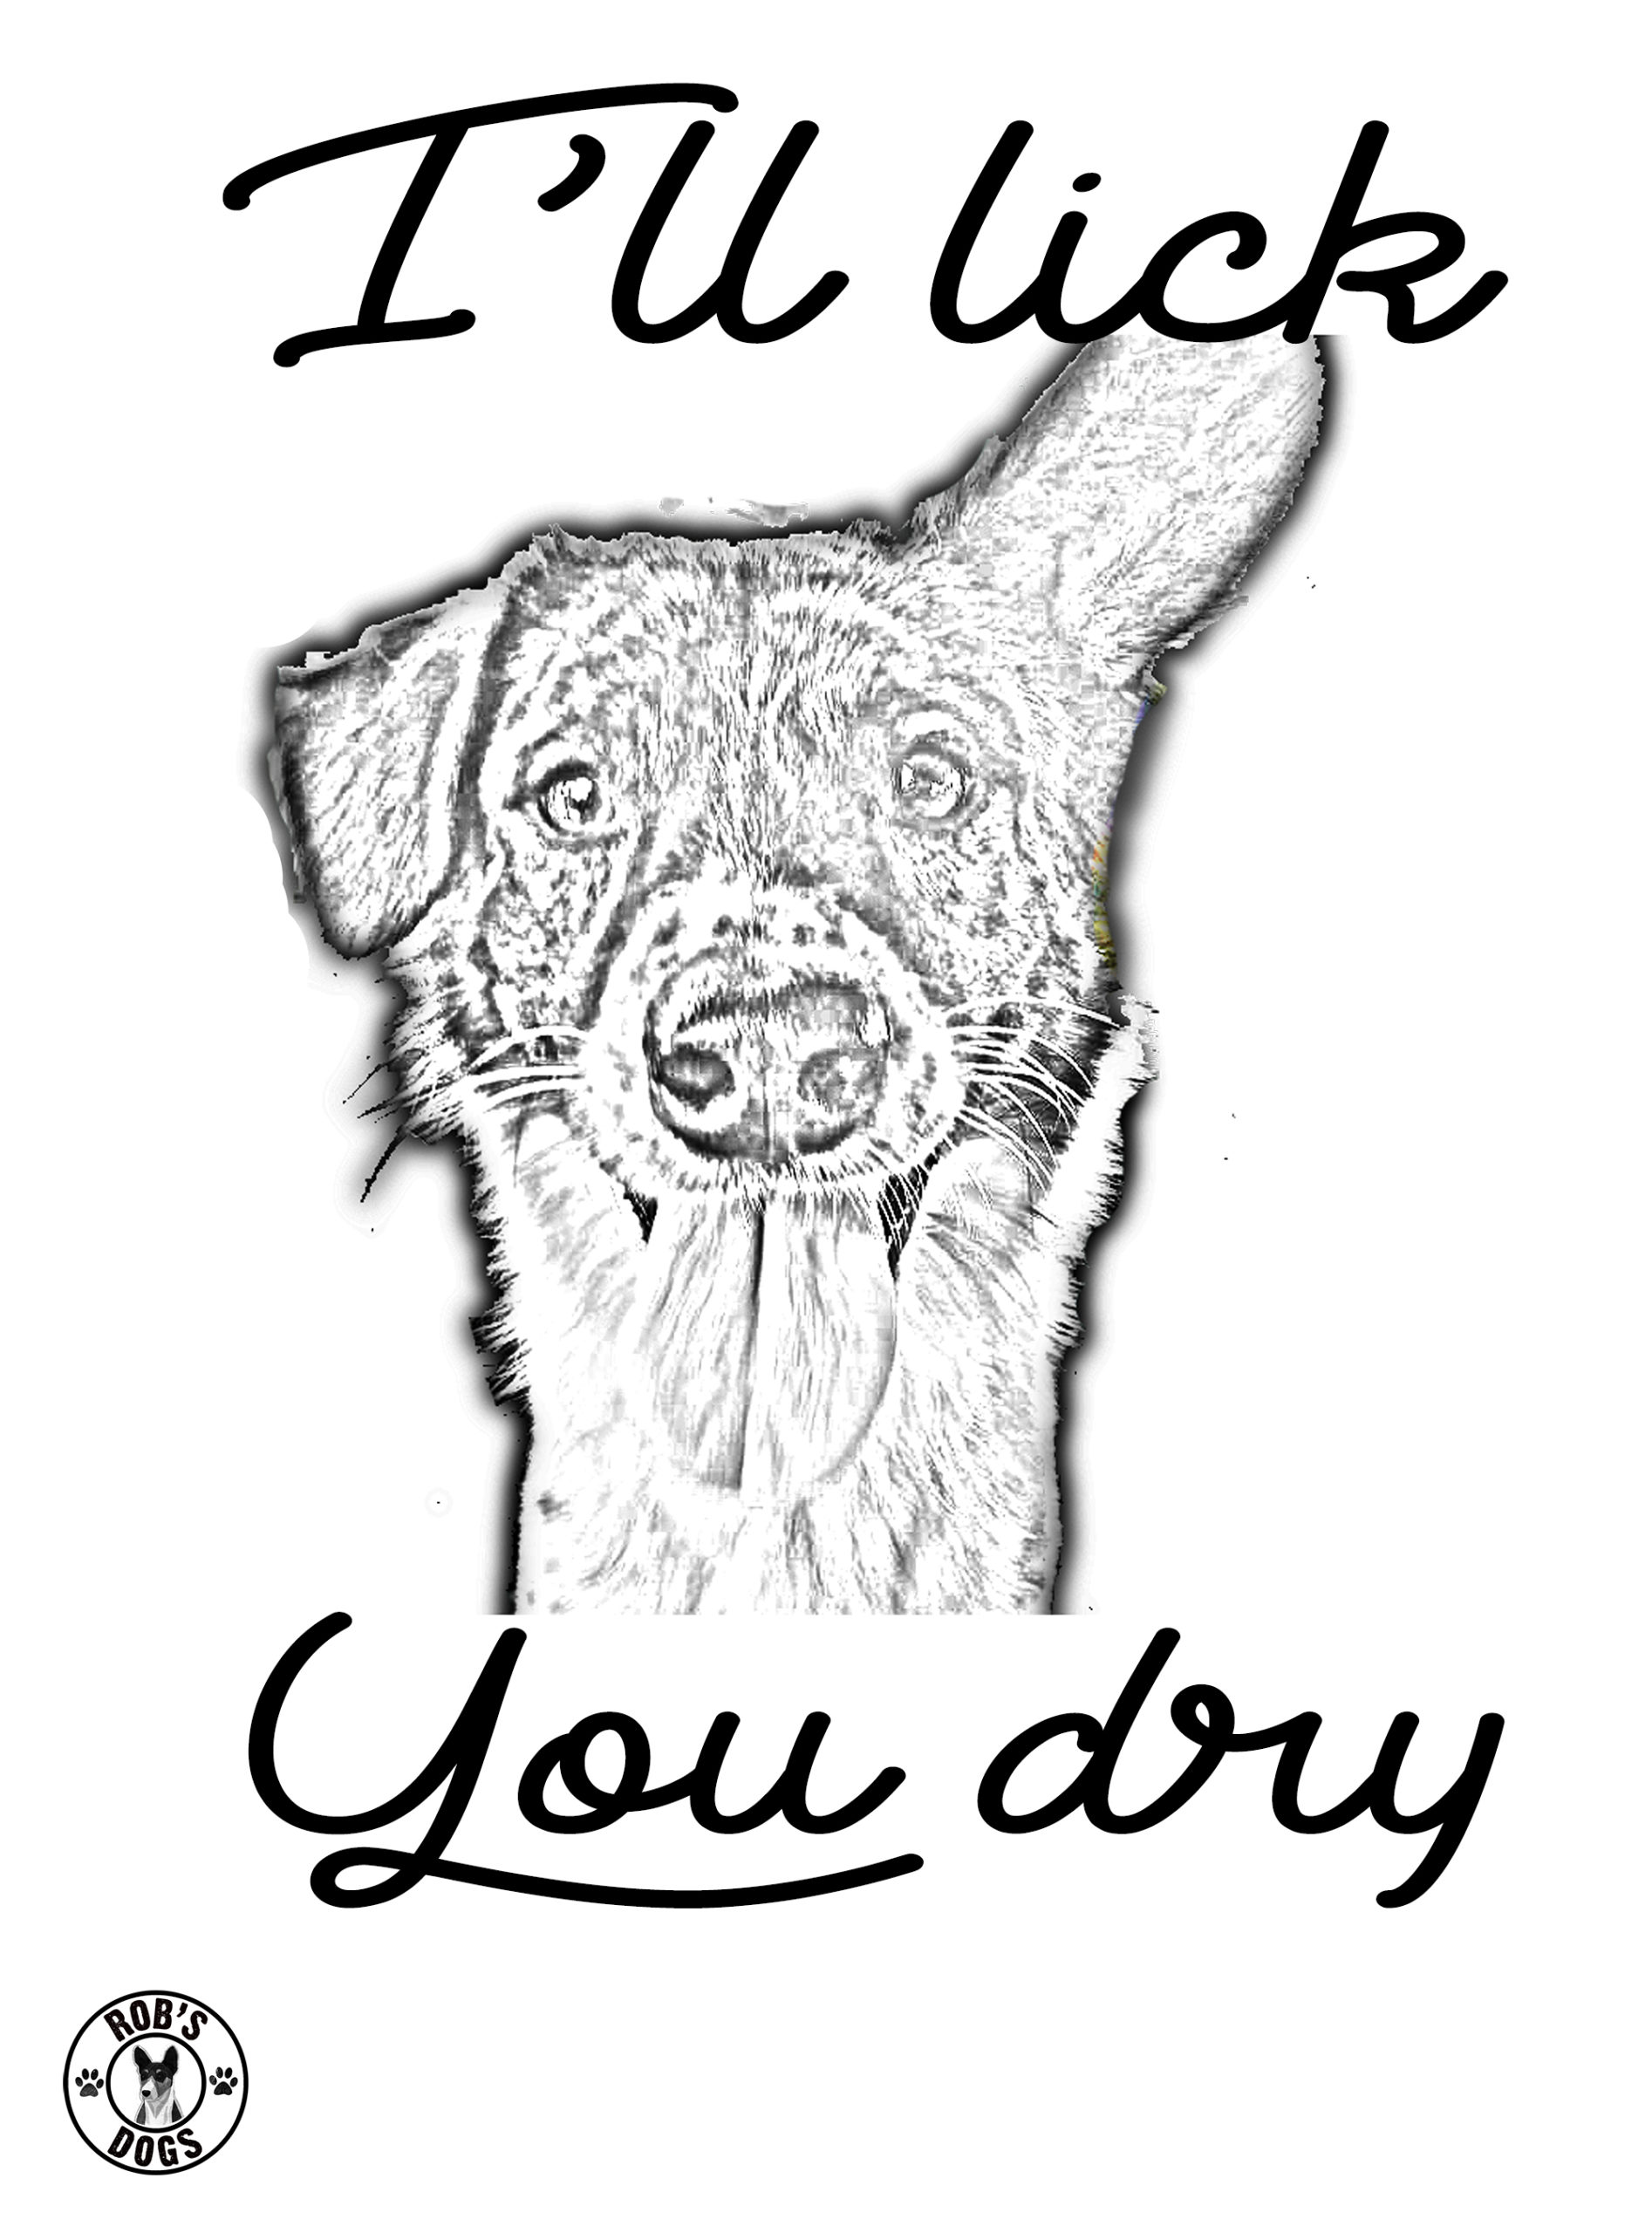 ROBS DOGS RESOURCES, POSTERS, PATTERNS, SUPPORT & MORE